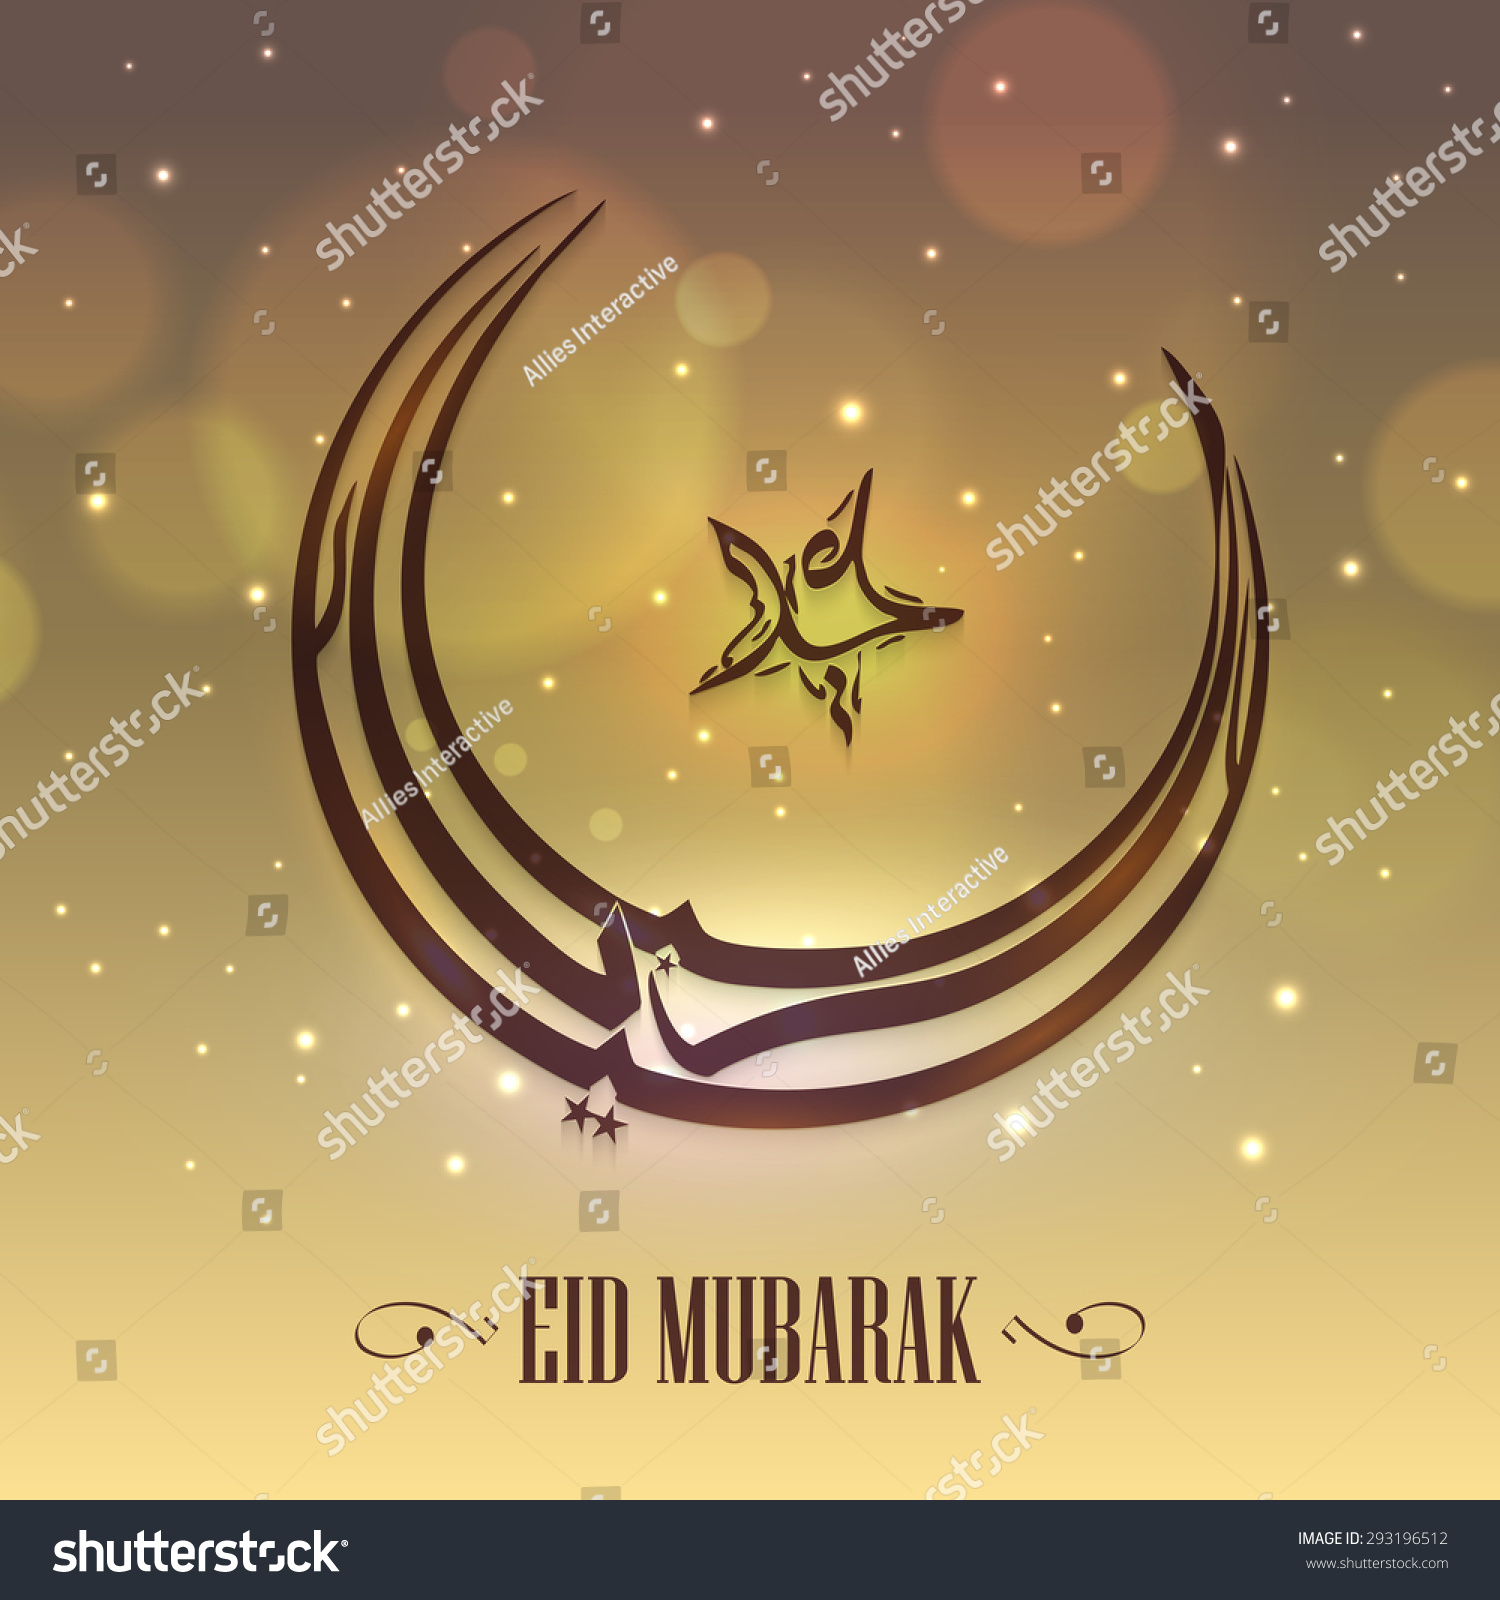 Arabic islamic calligraphy text eid mubarak stock vector 293196512 arabic islamic calligraphy of text eid mubarak in crescent moon and star shape on shiny background biocorpaavc Gallery